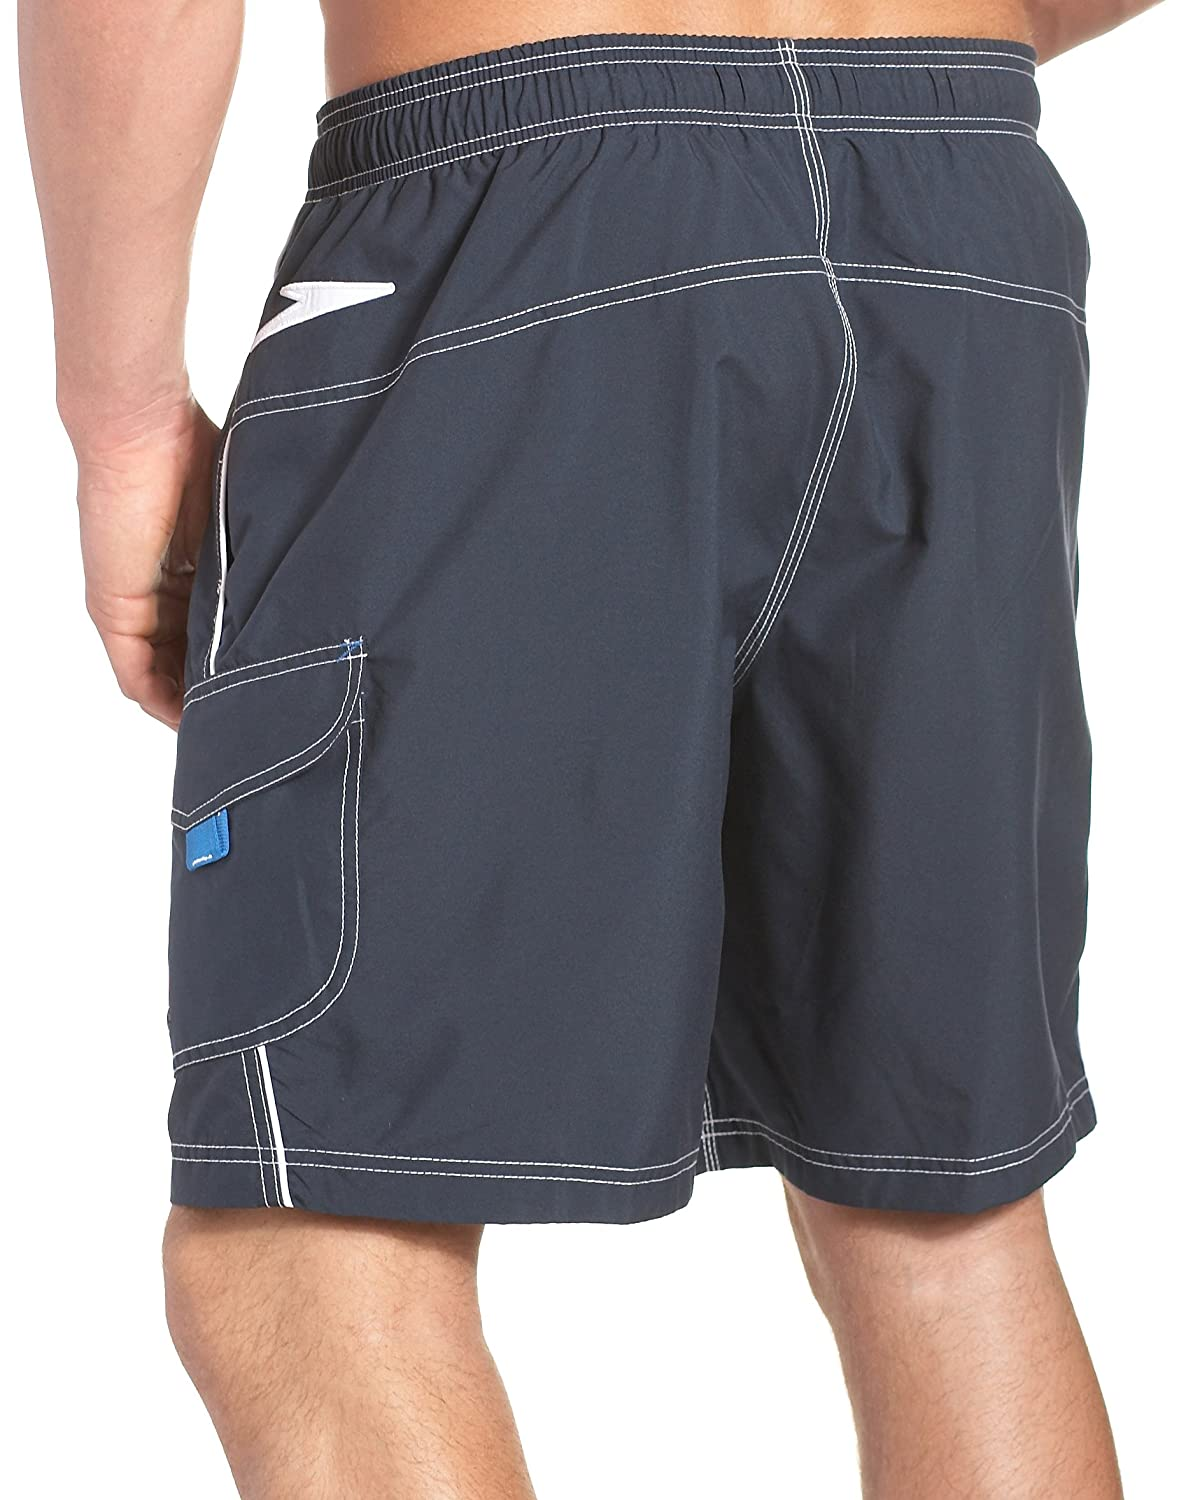 7ad7676166 Amazon.com : Speedo Men's Lifeguard Solid Volley 20 Inch Watershorts :  Fashion Swim Trunks : Clothing